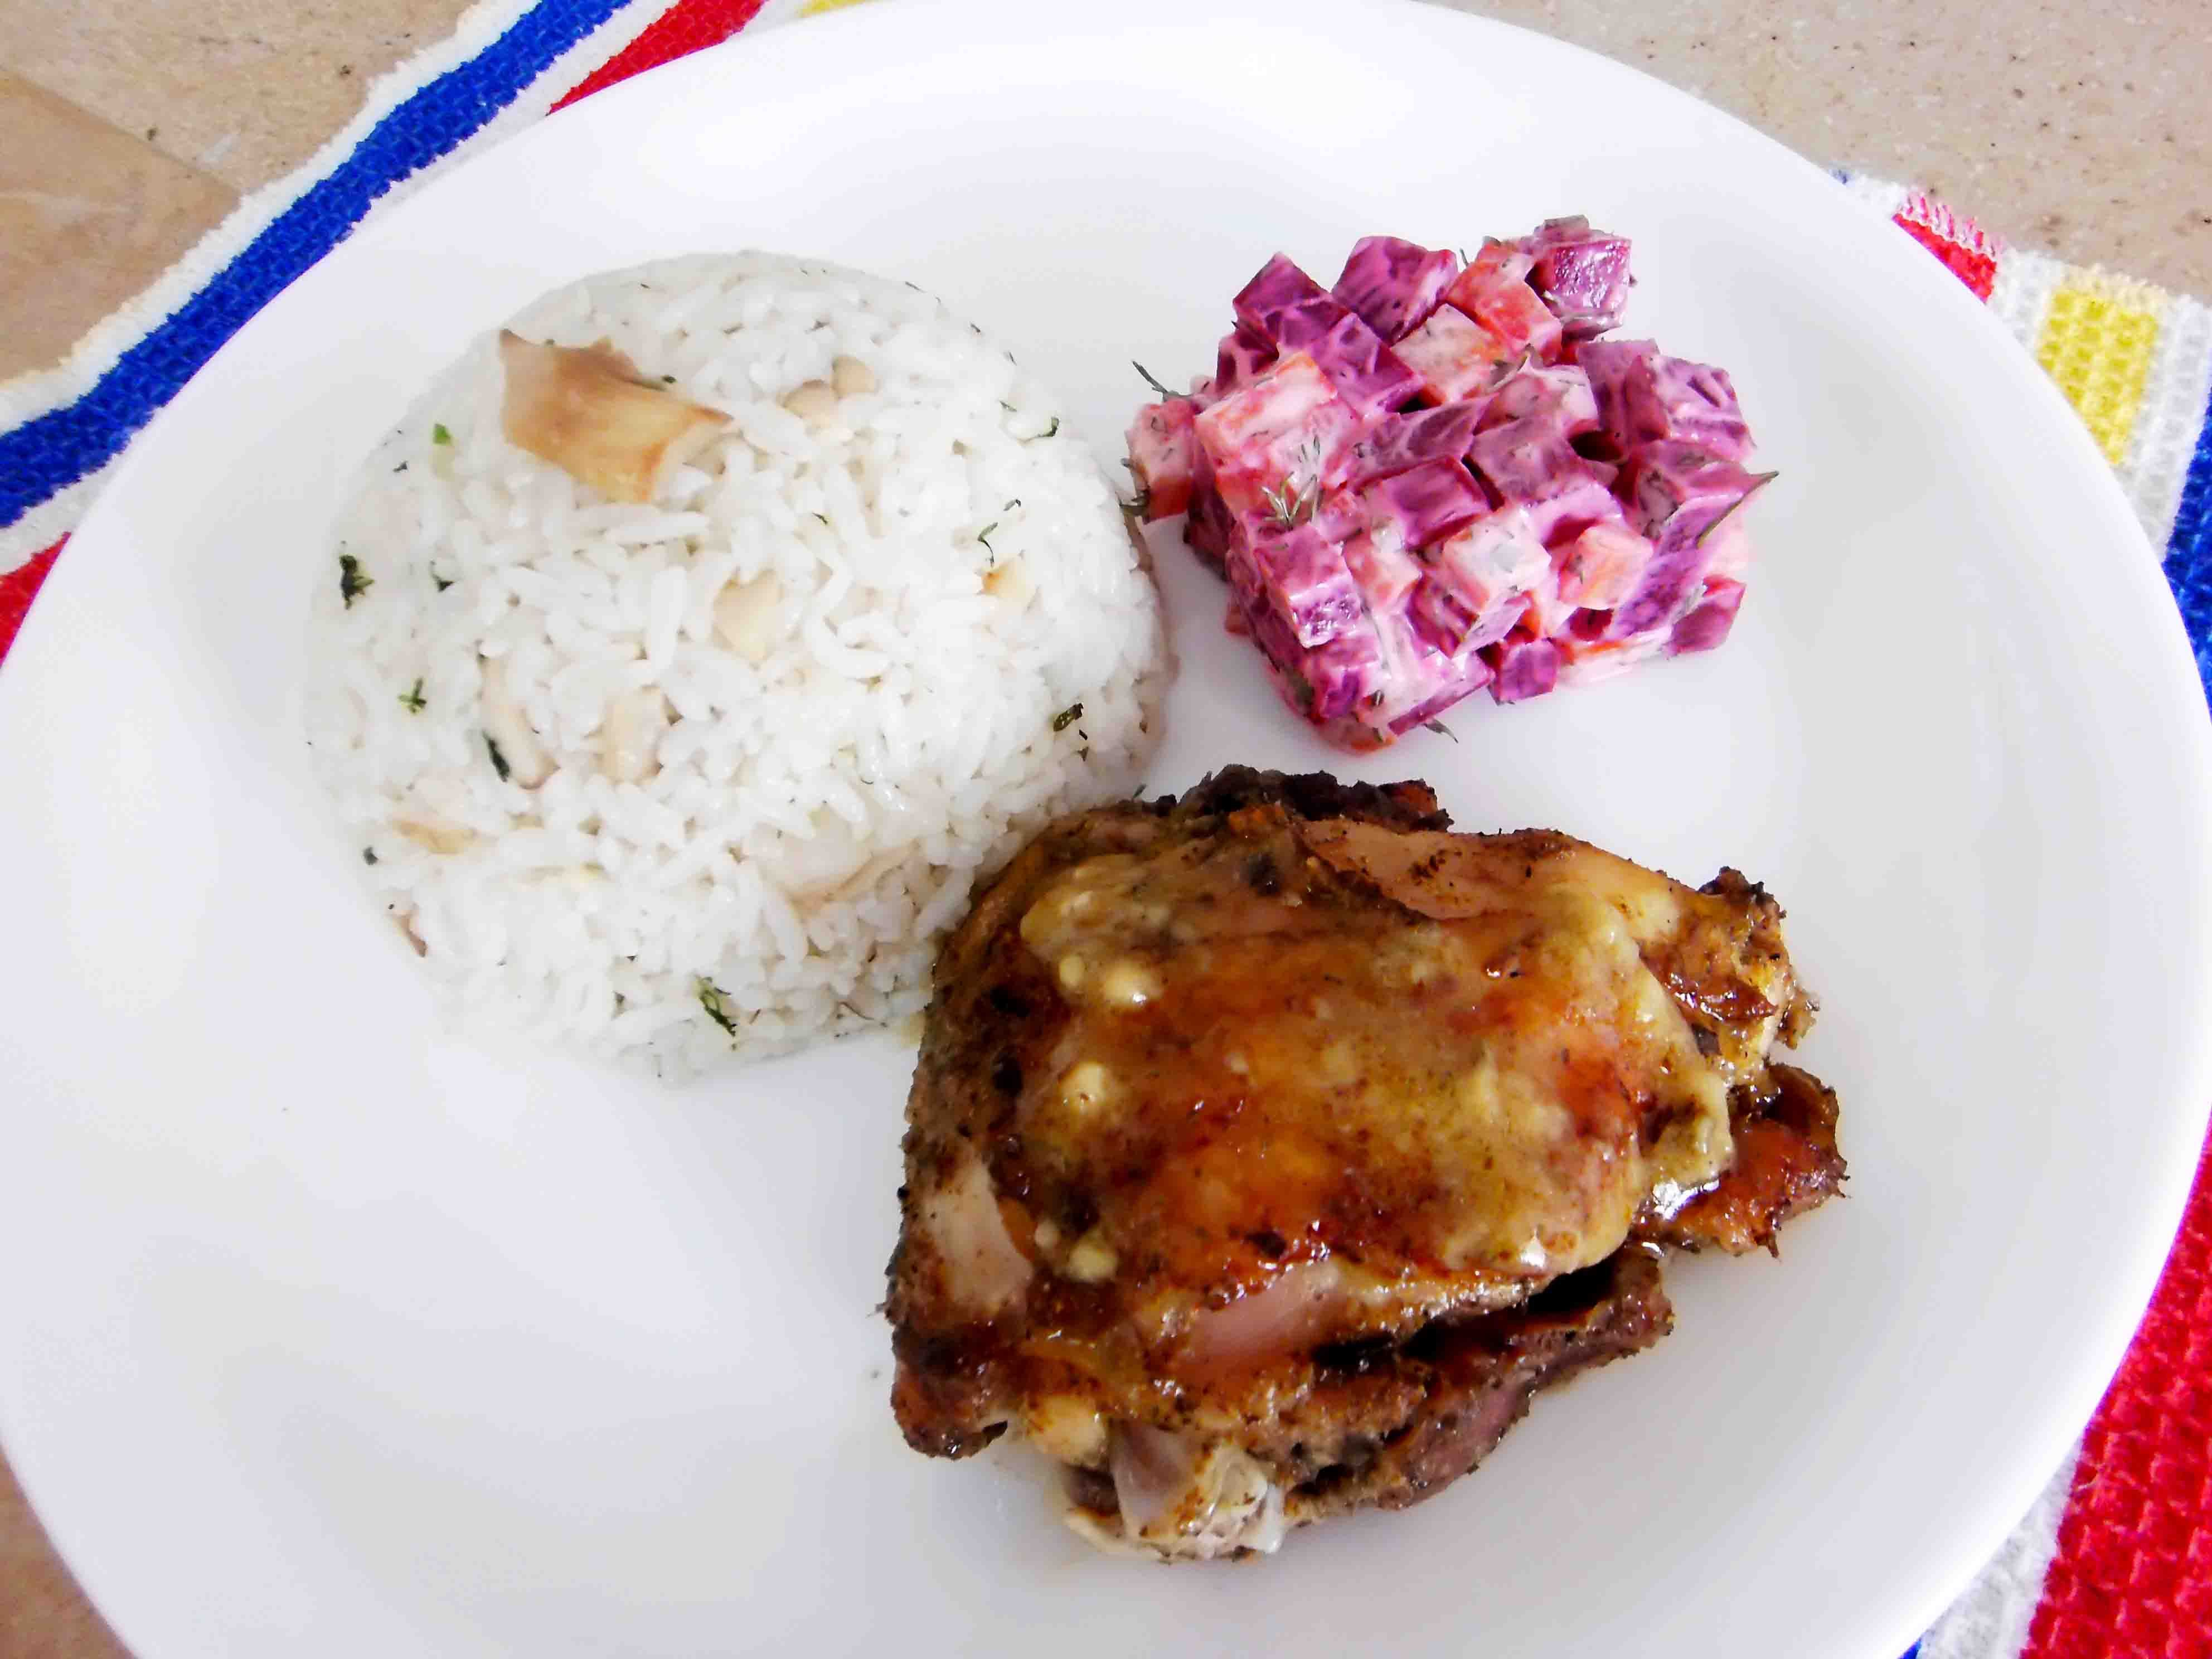 Baked chicken and creamy rice with mushrooms with a beetroot salad. / Pollo al horno más arroz cremoso con champiñones acompañados de una ensalada de remolacha.